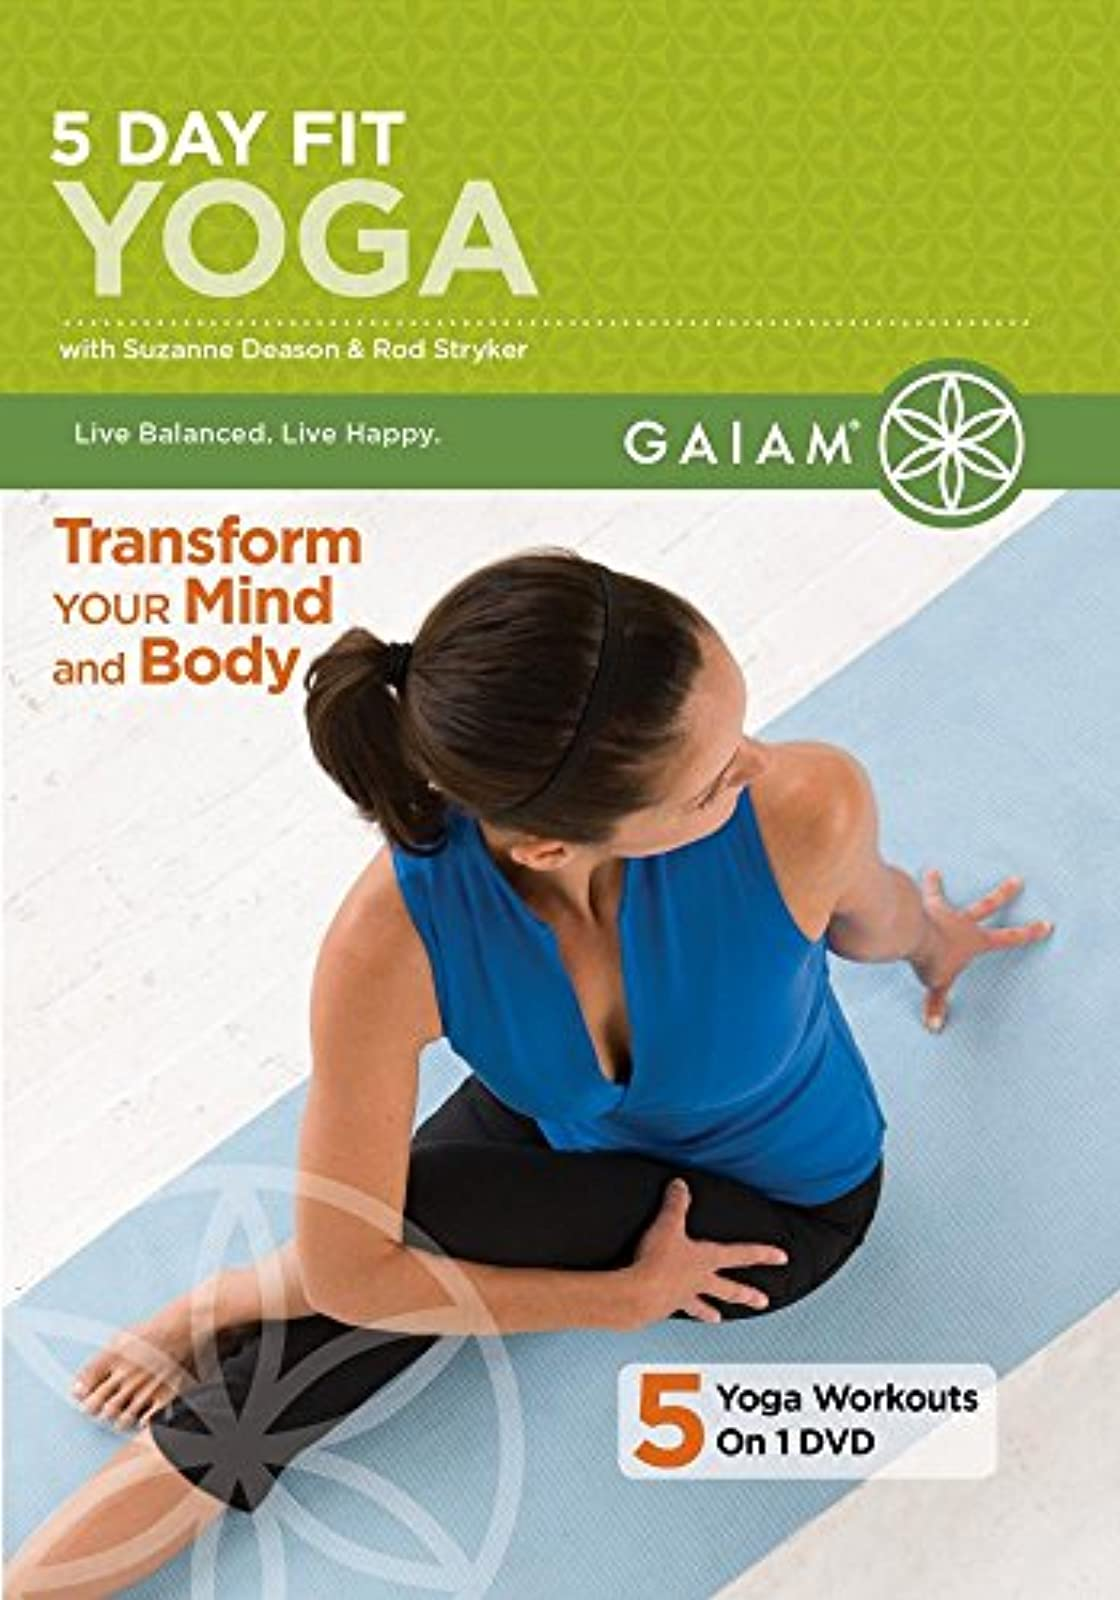 5 Day Fit Yoga On DVD With Suzanne Deason Exercise